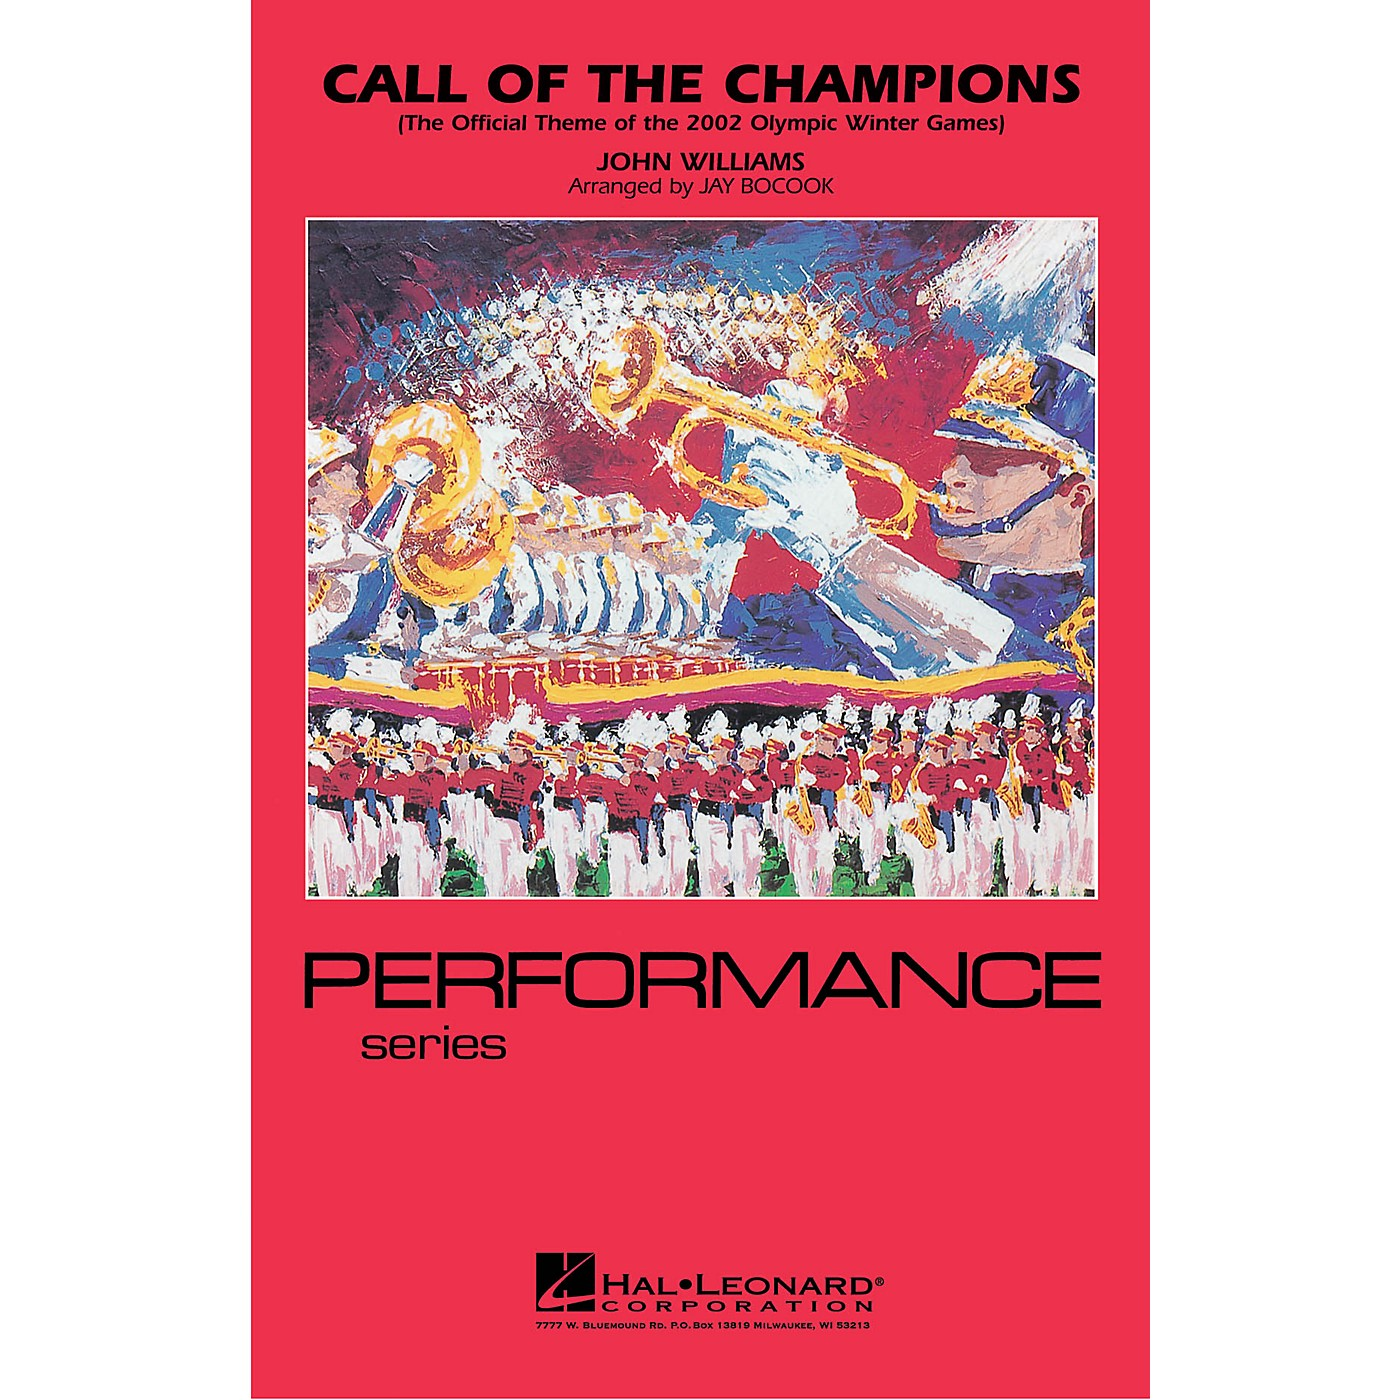 Hal Leonard Call of the Champions Marching Band Level 3-4 Arranged by Jay Bocook thumbnail